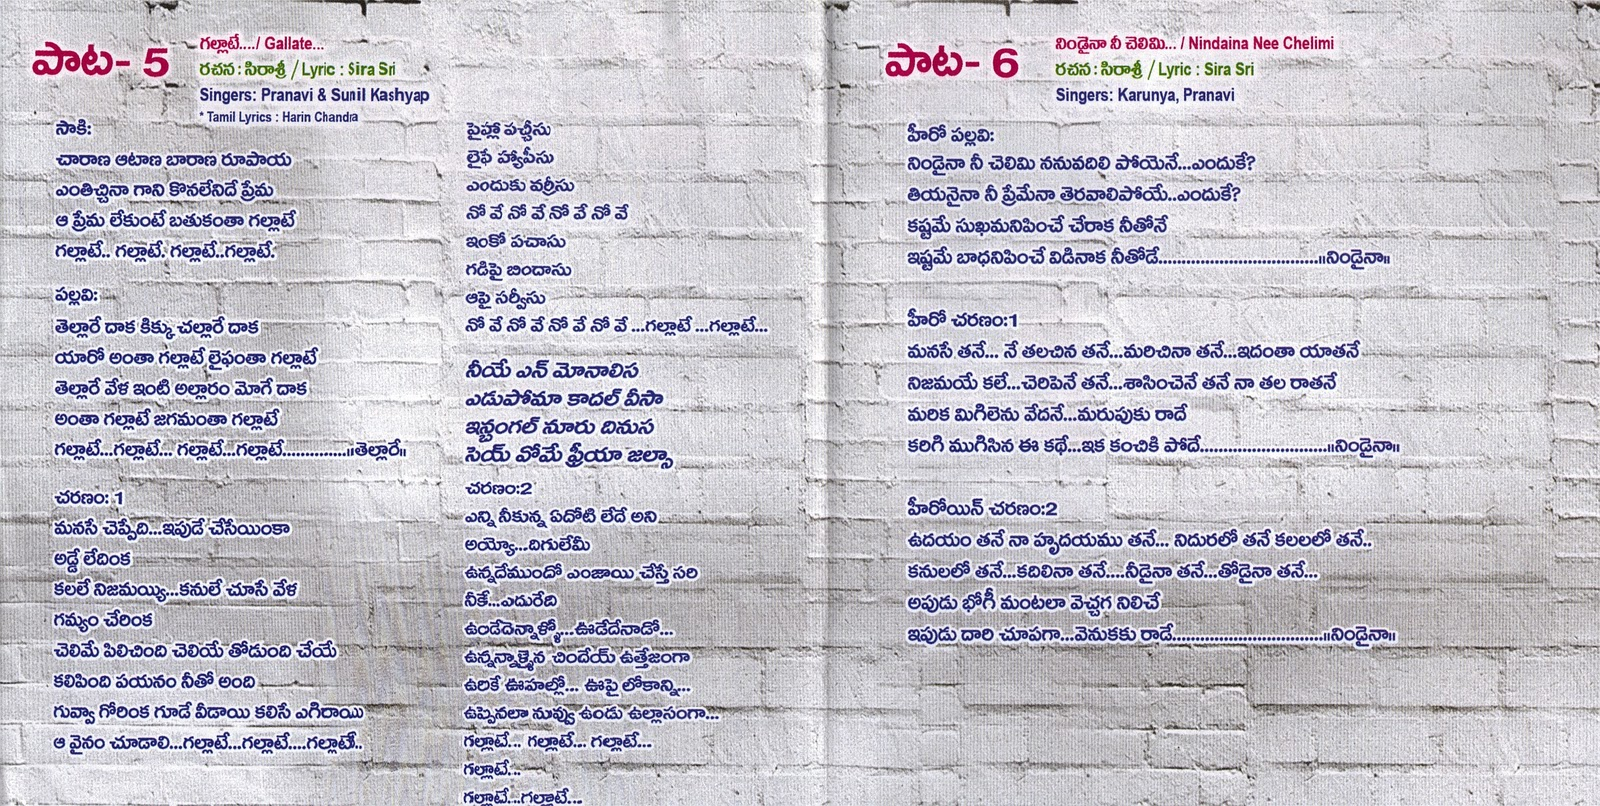 Special thanks to RAVI . Click on the images to view in bigger size